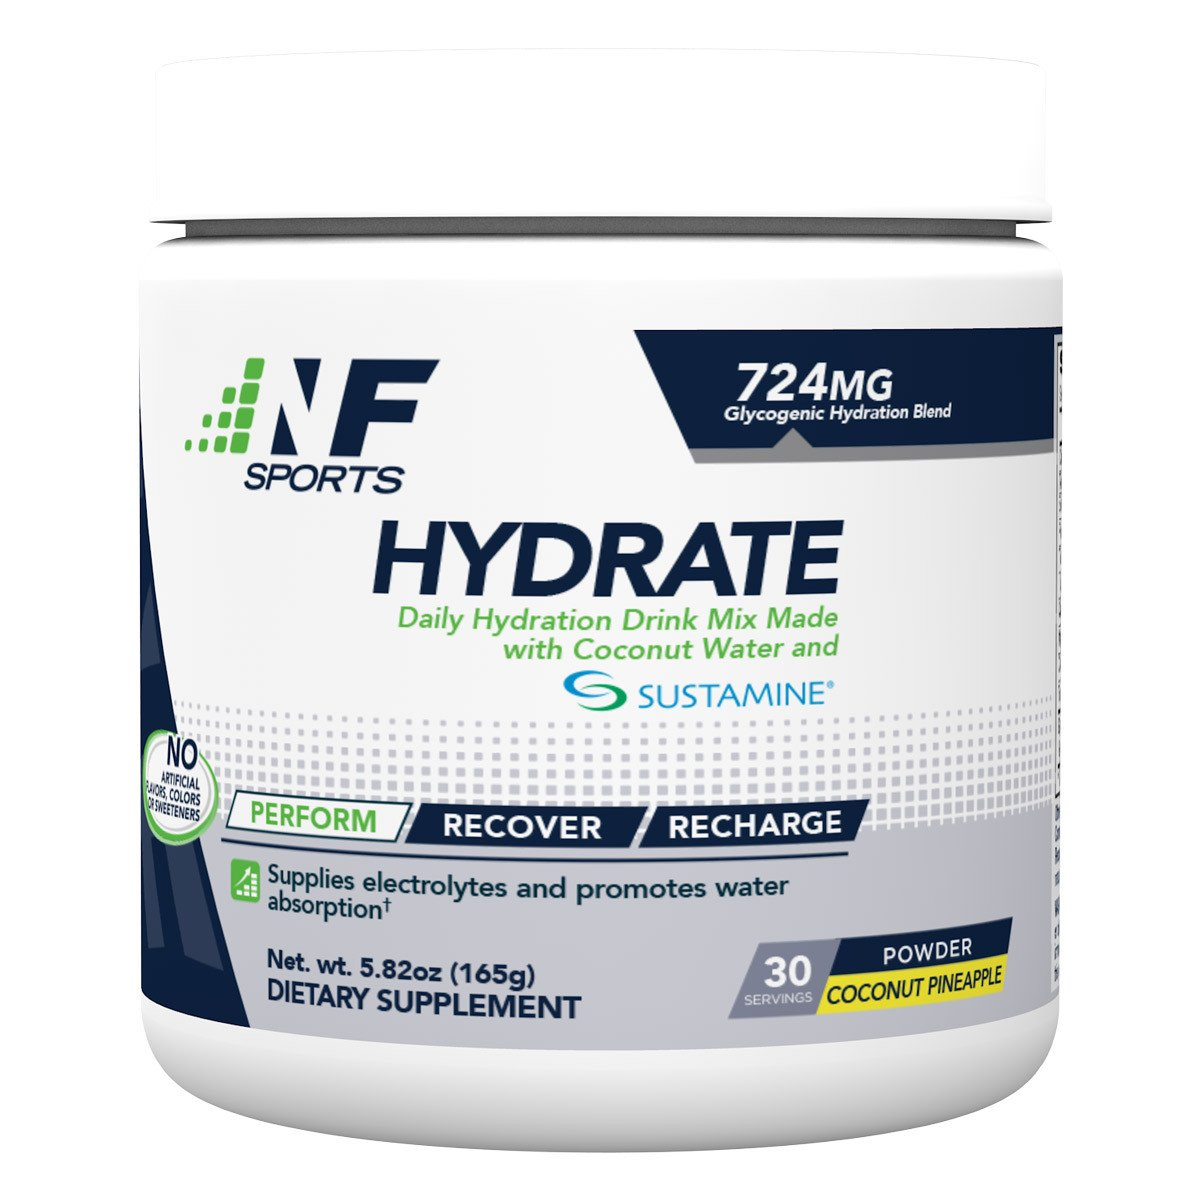 nf-sports-hydrate-coconut-pineapple-product-detail-new